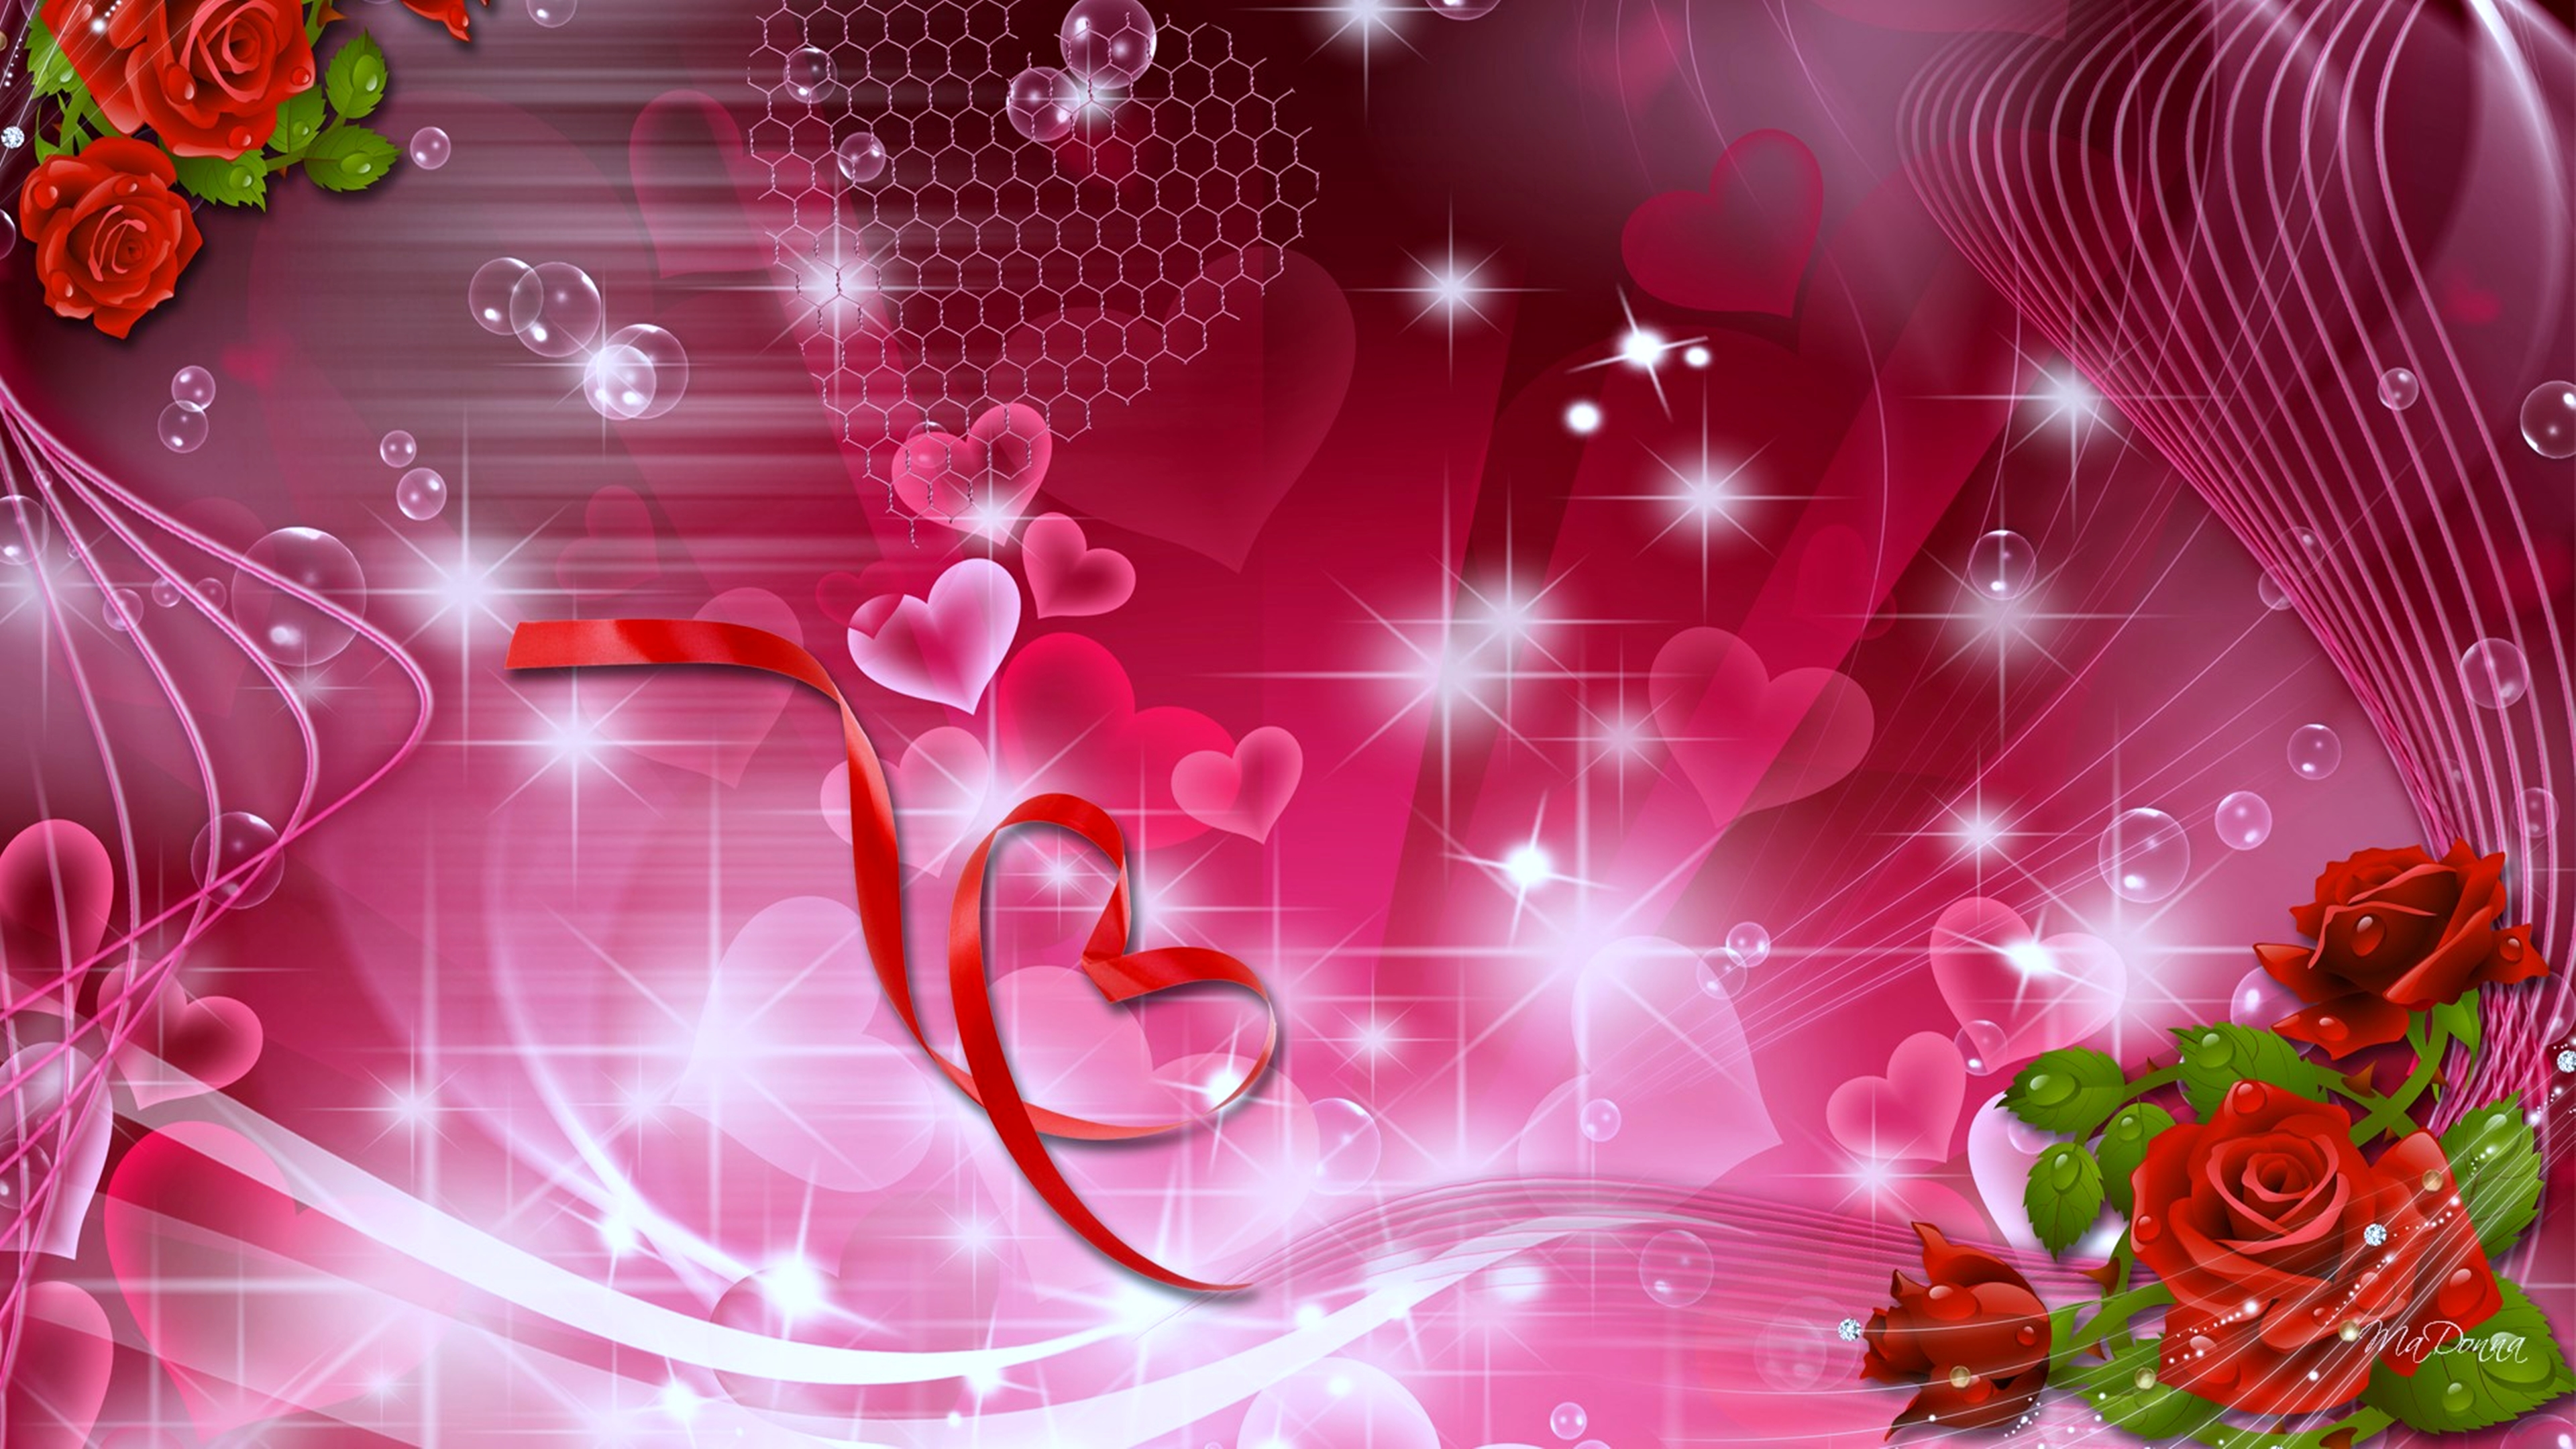 Love Wallpaper Hd For Samsung Galaxy Y : Love Backgrounds, Pictures, Images